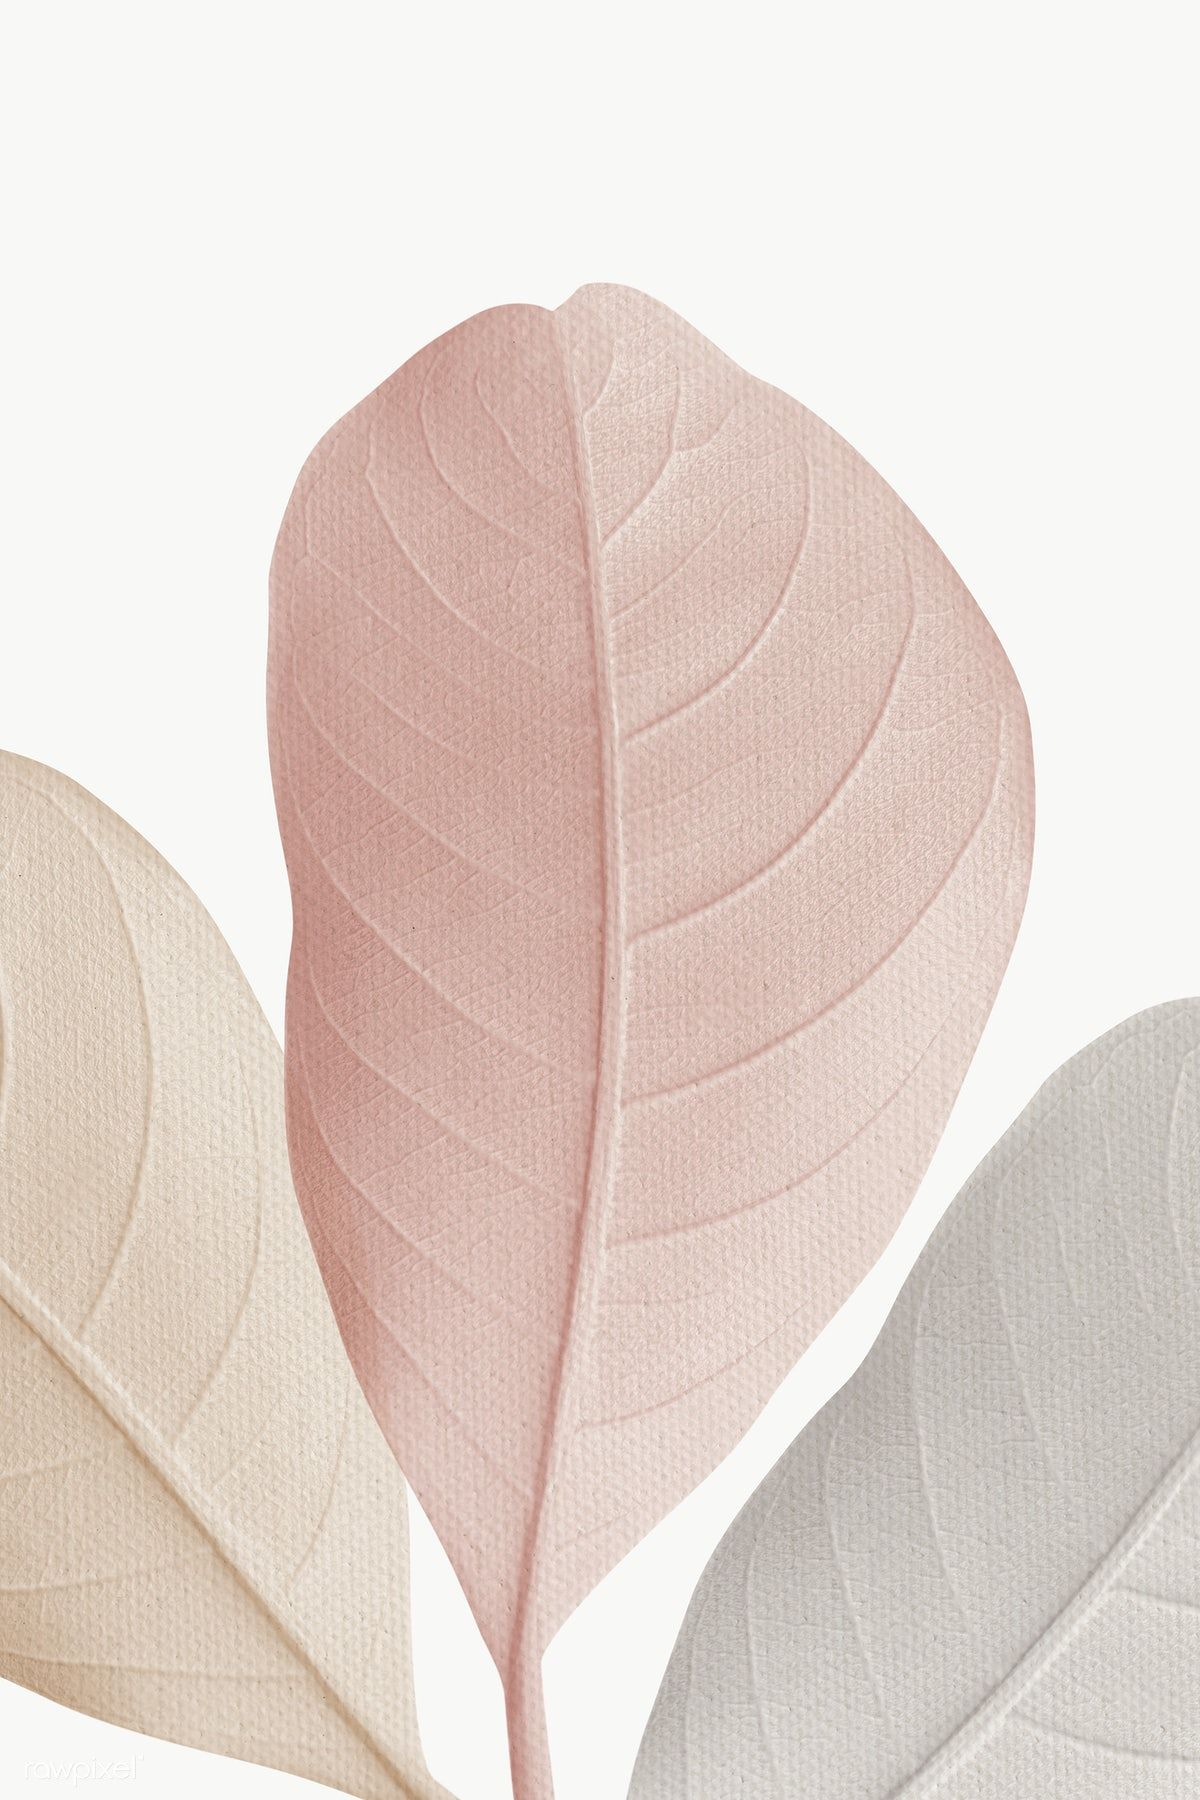 Download free png of Closeup of pastel leaves text